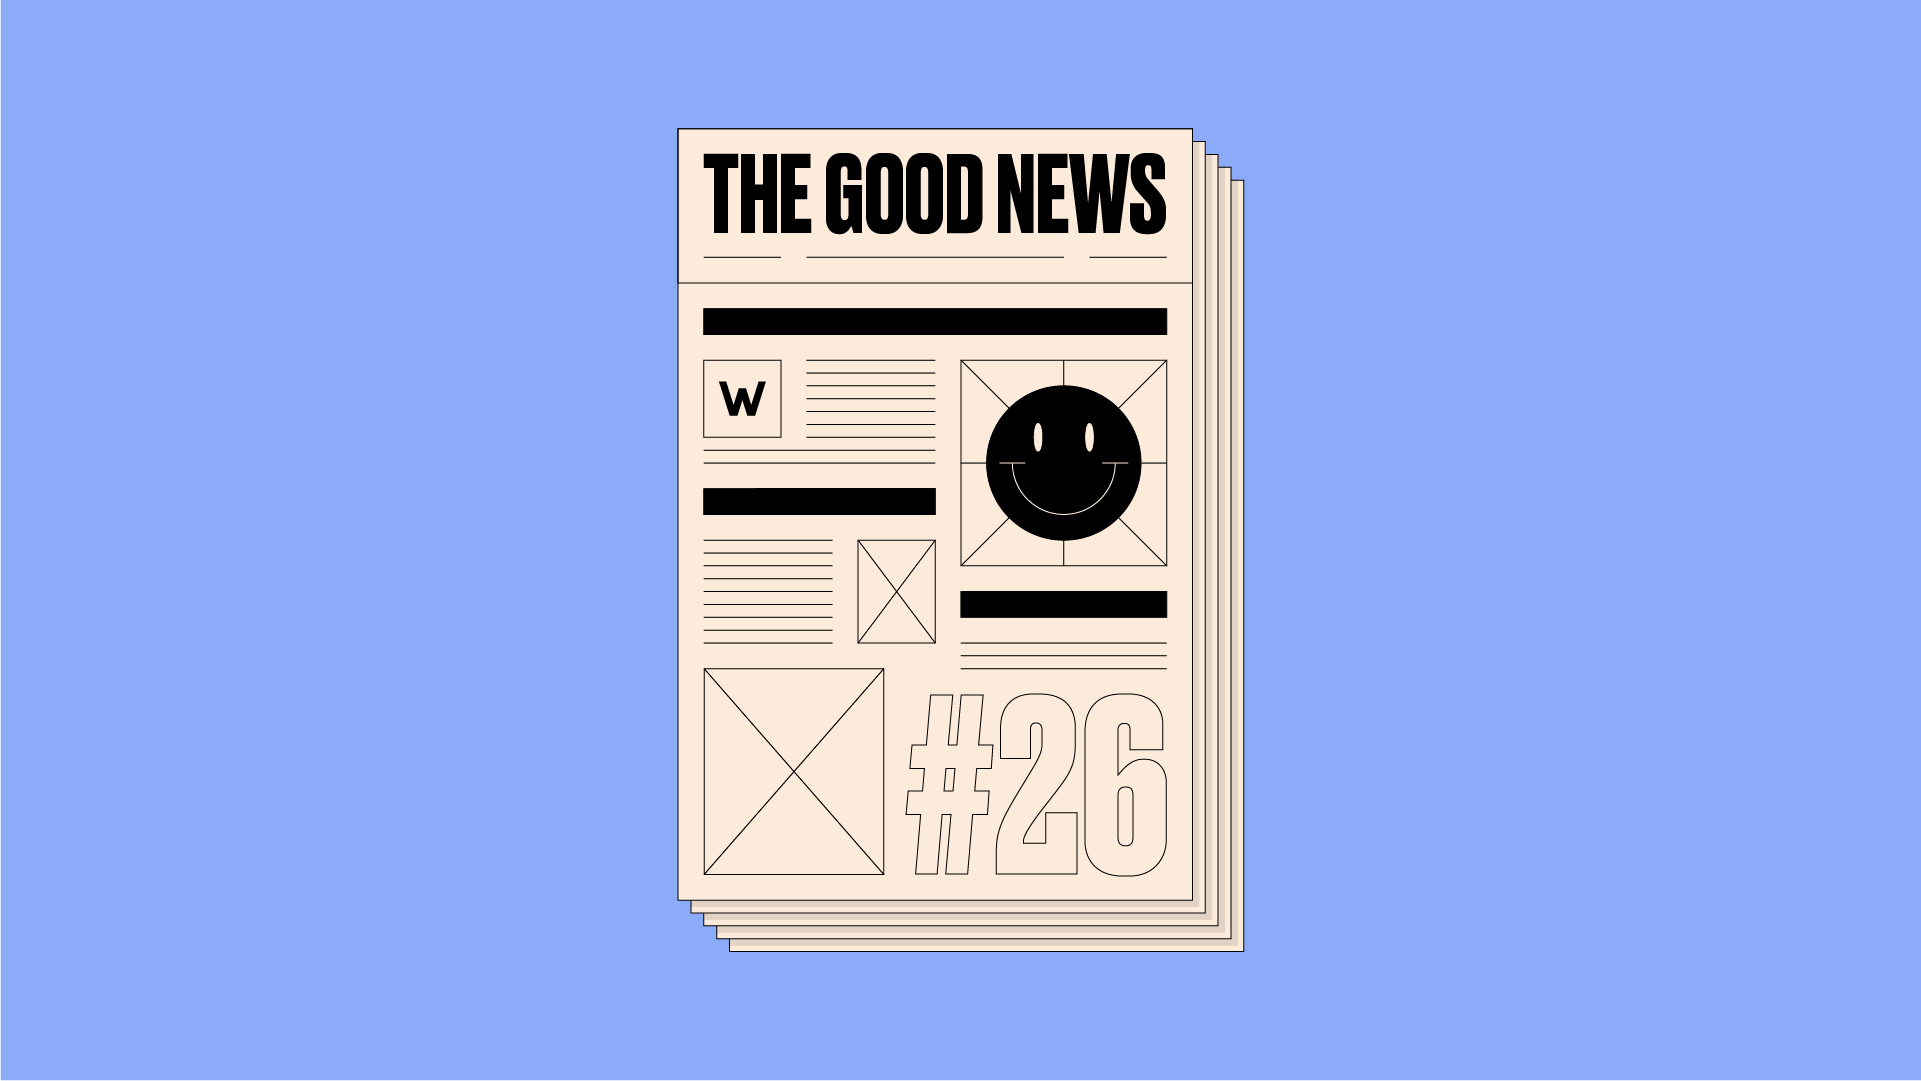 Graphic design of newspaper front page, reading 'The Good News #26' on a purple background